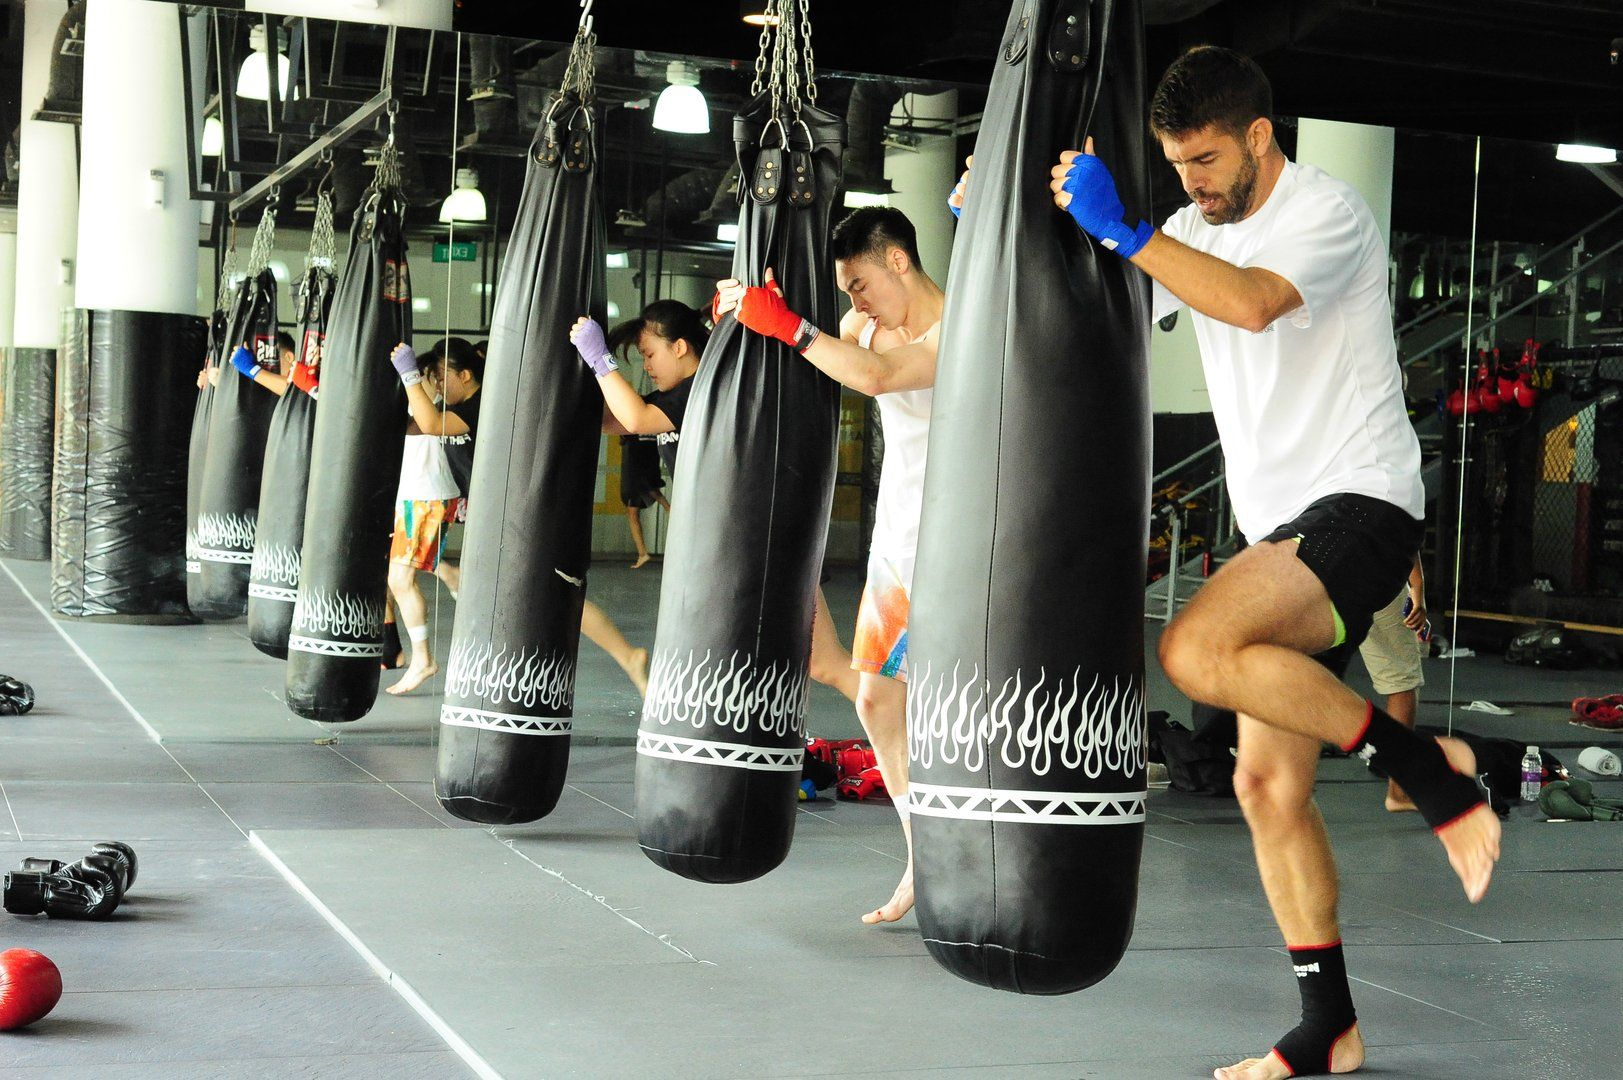 Training with a heavy bag improves your balance and coordination.